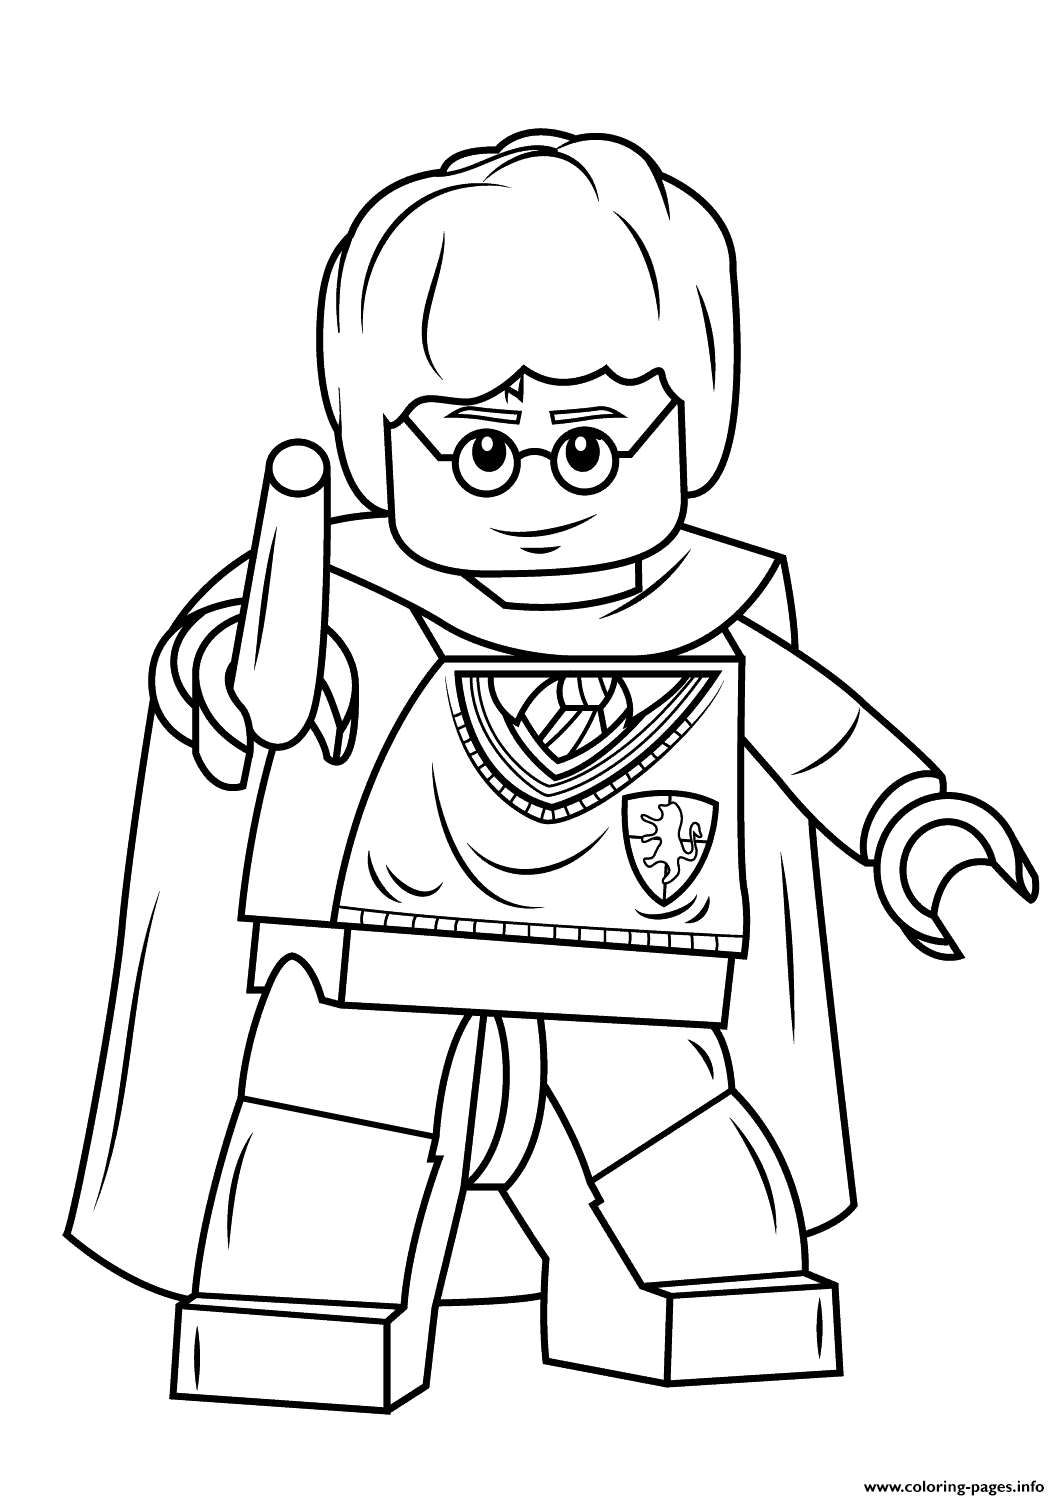 graphic regarding Printable Harry Potter Coloring Pages identified as Harry Potter Coloring Web pages In the direction of Print at